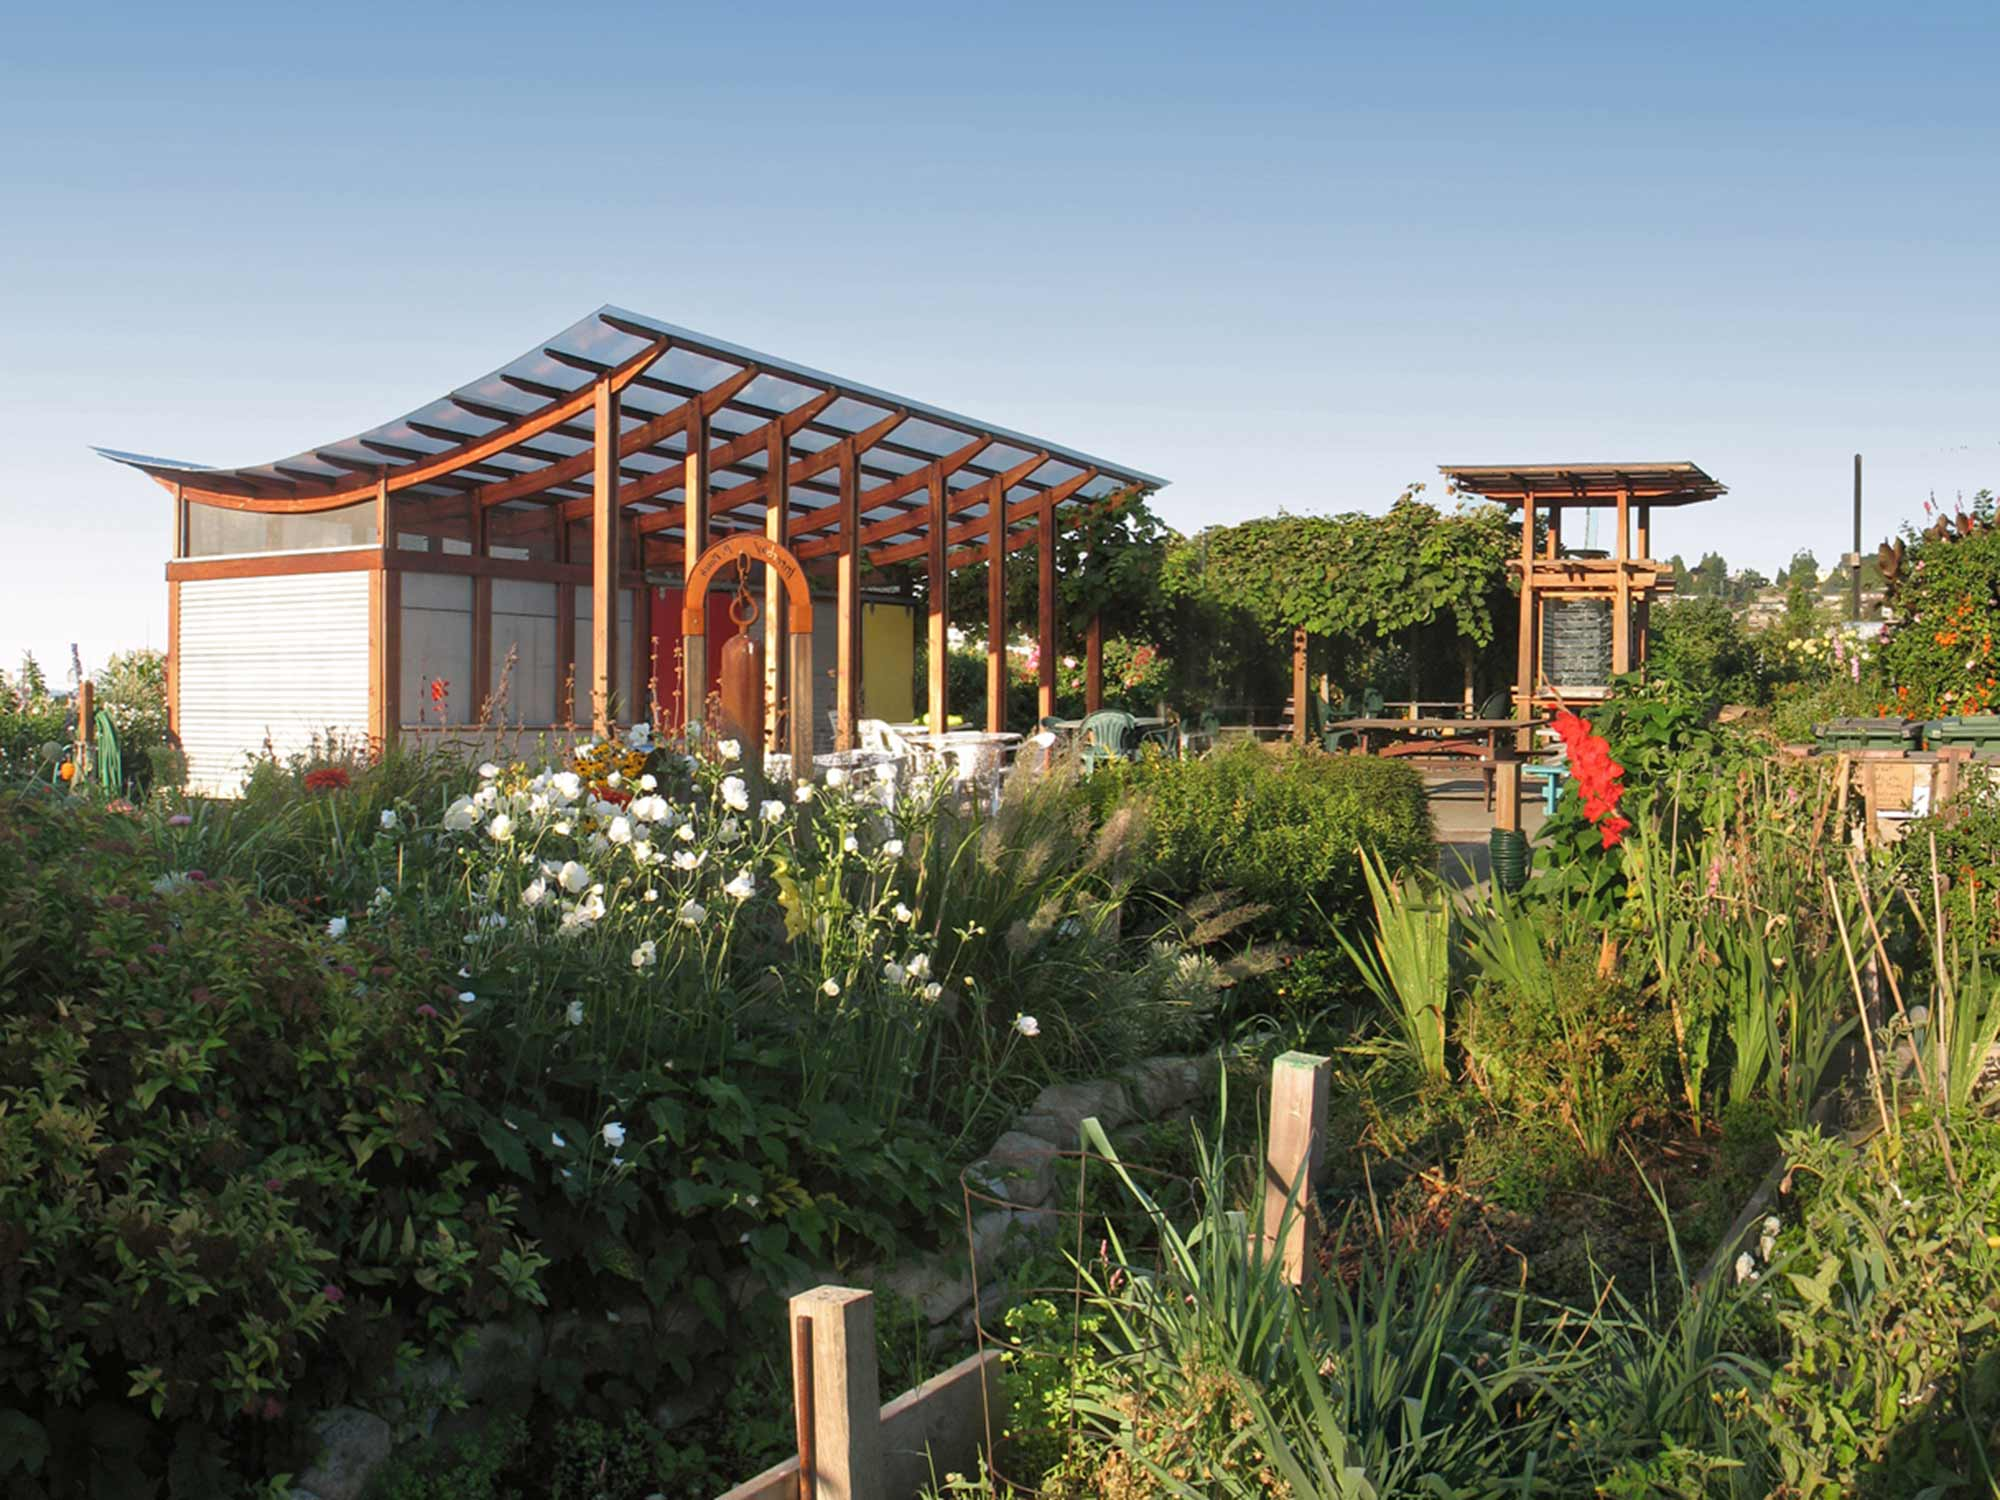 A simple structure that creates a plaza in the middle of the garden, provides shelter for community functions, tool storage, and gathers rainwater for reuse.